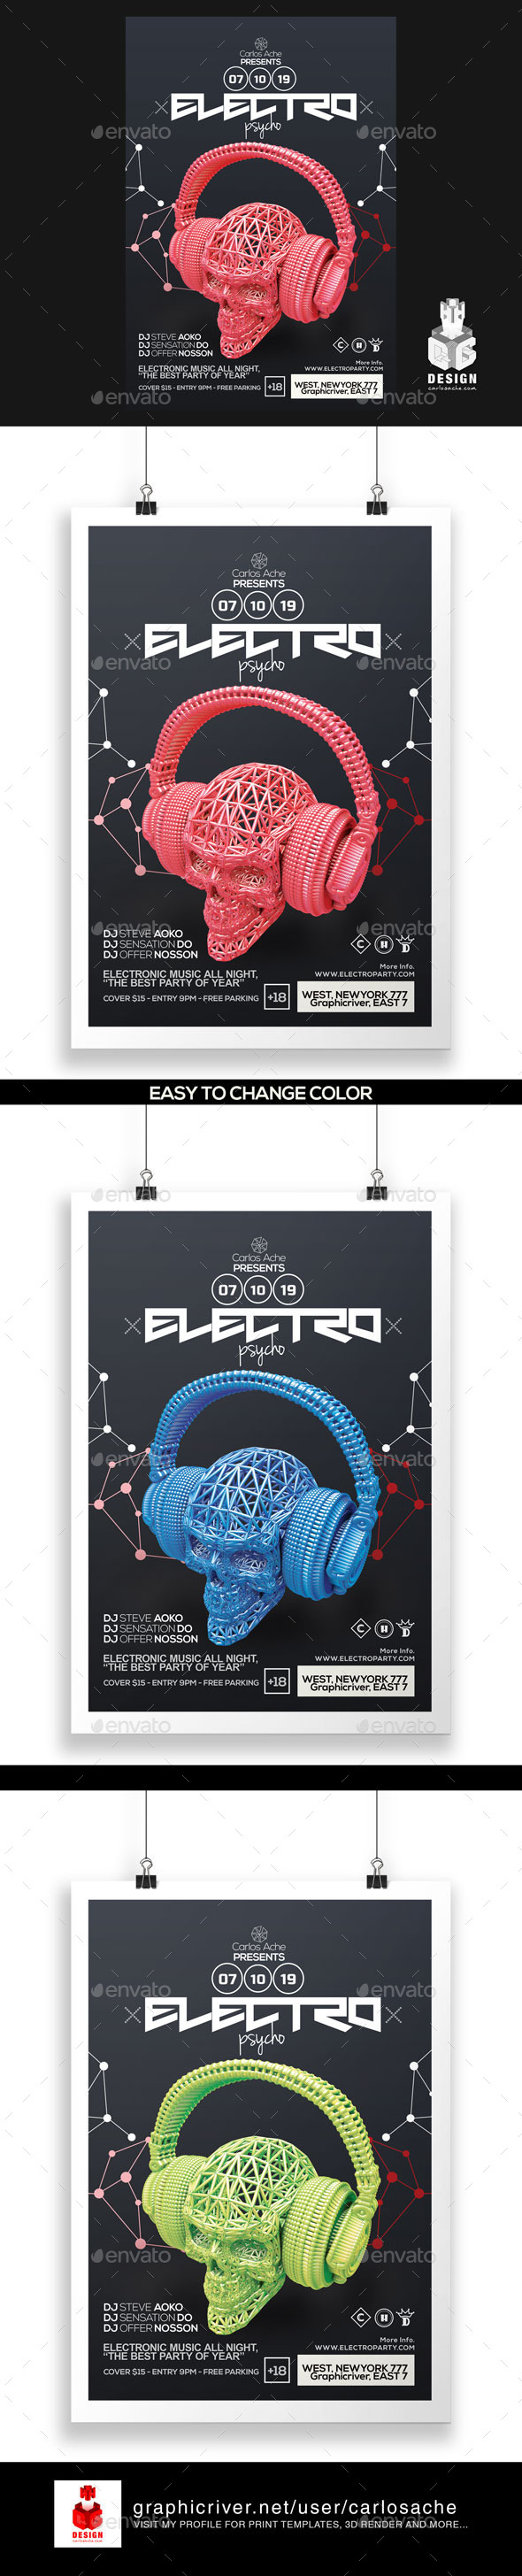 Electro Psycho Poster - Flyer Template - Clubs & Parties Events